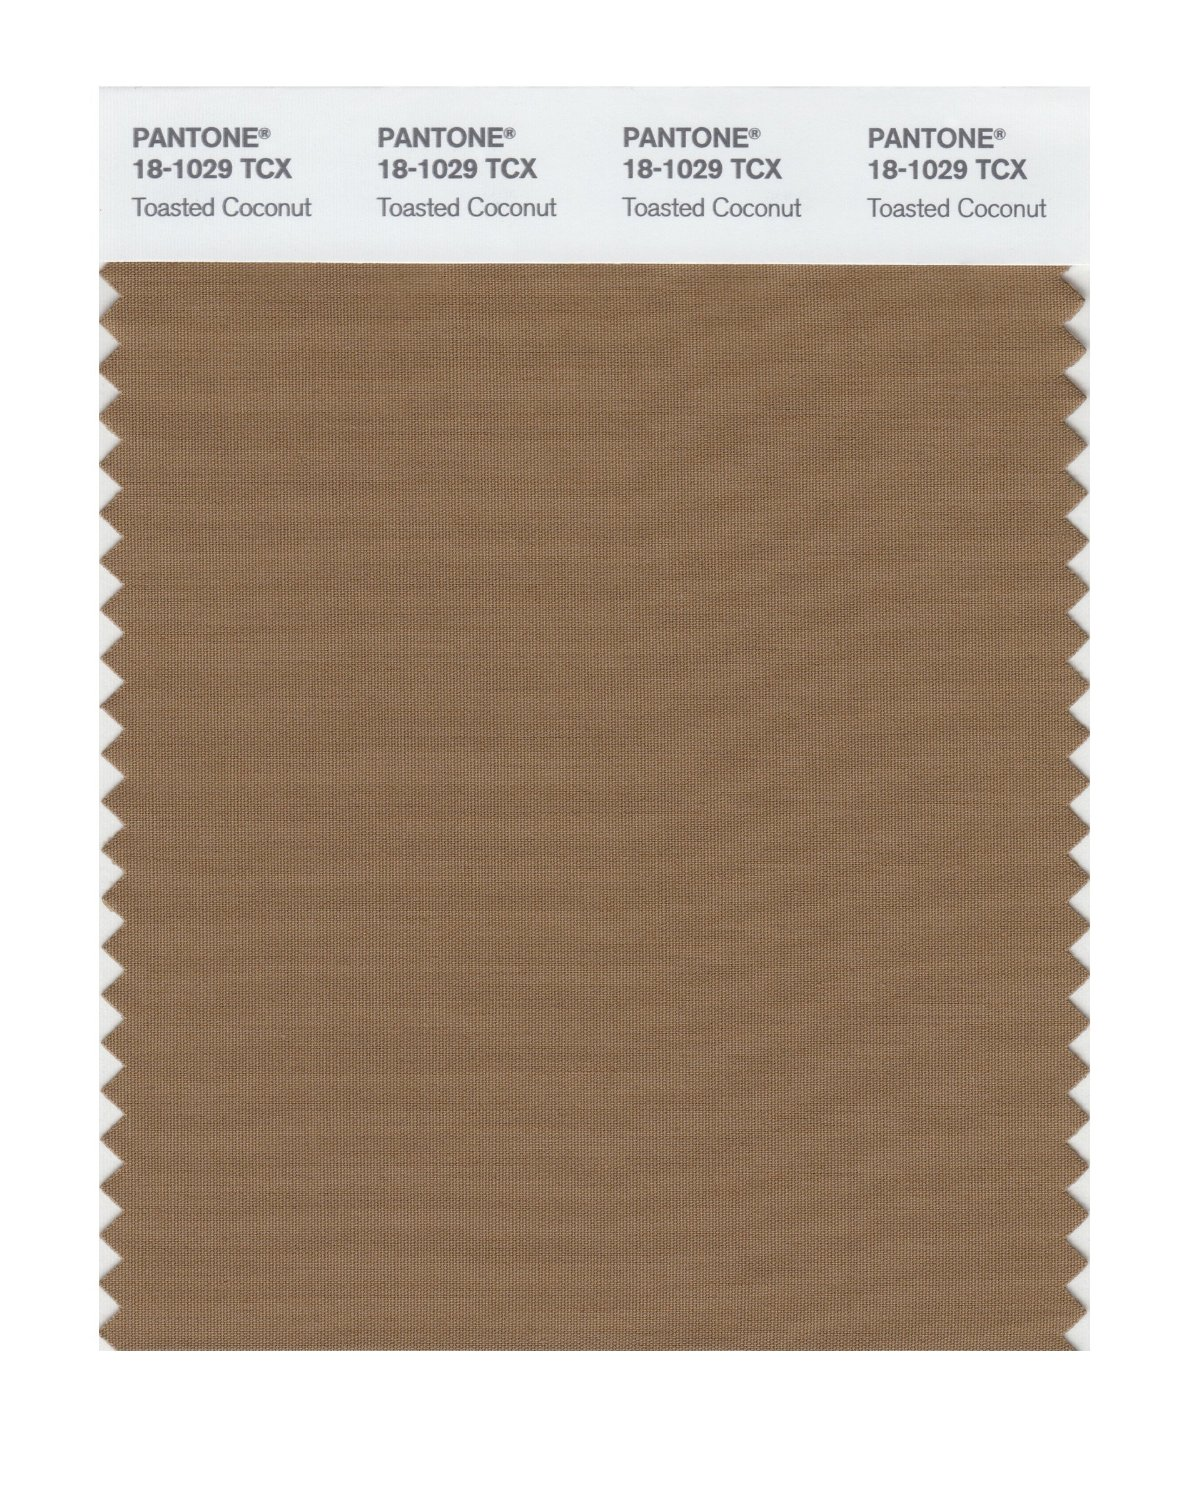 Pantone Smart Swatch 18-1029 Toasted Coconut